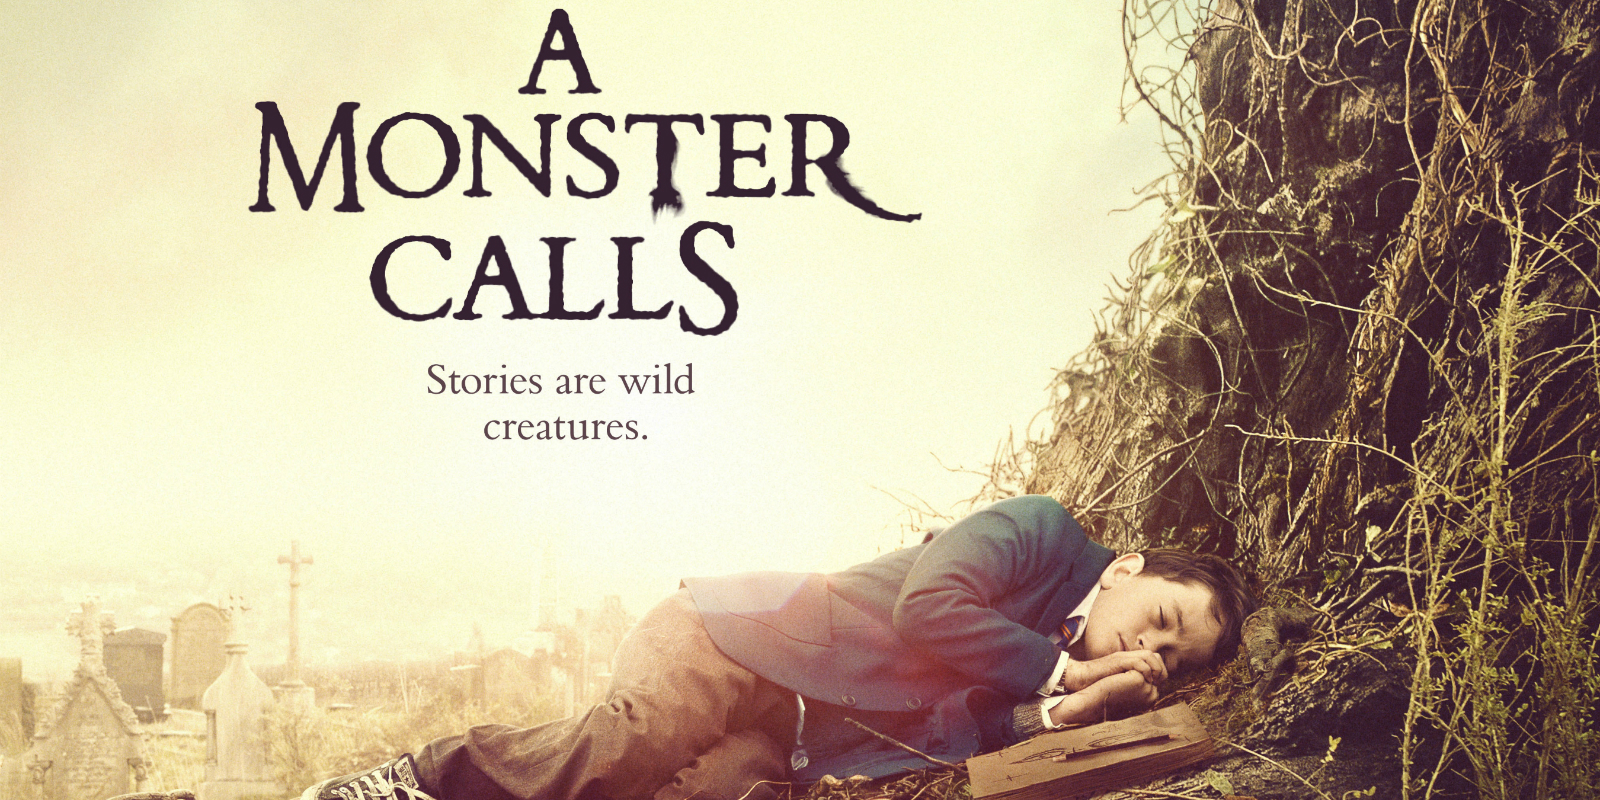 a-monster-calls-2016-trailers-posters-1